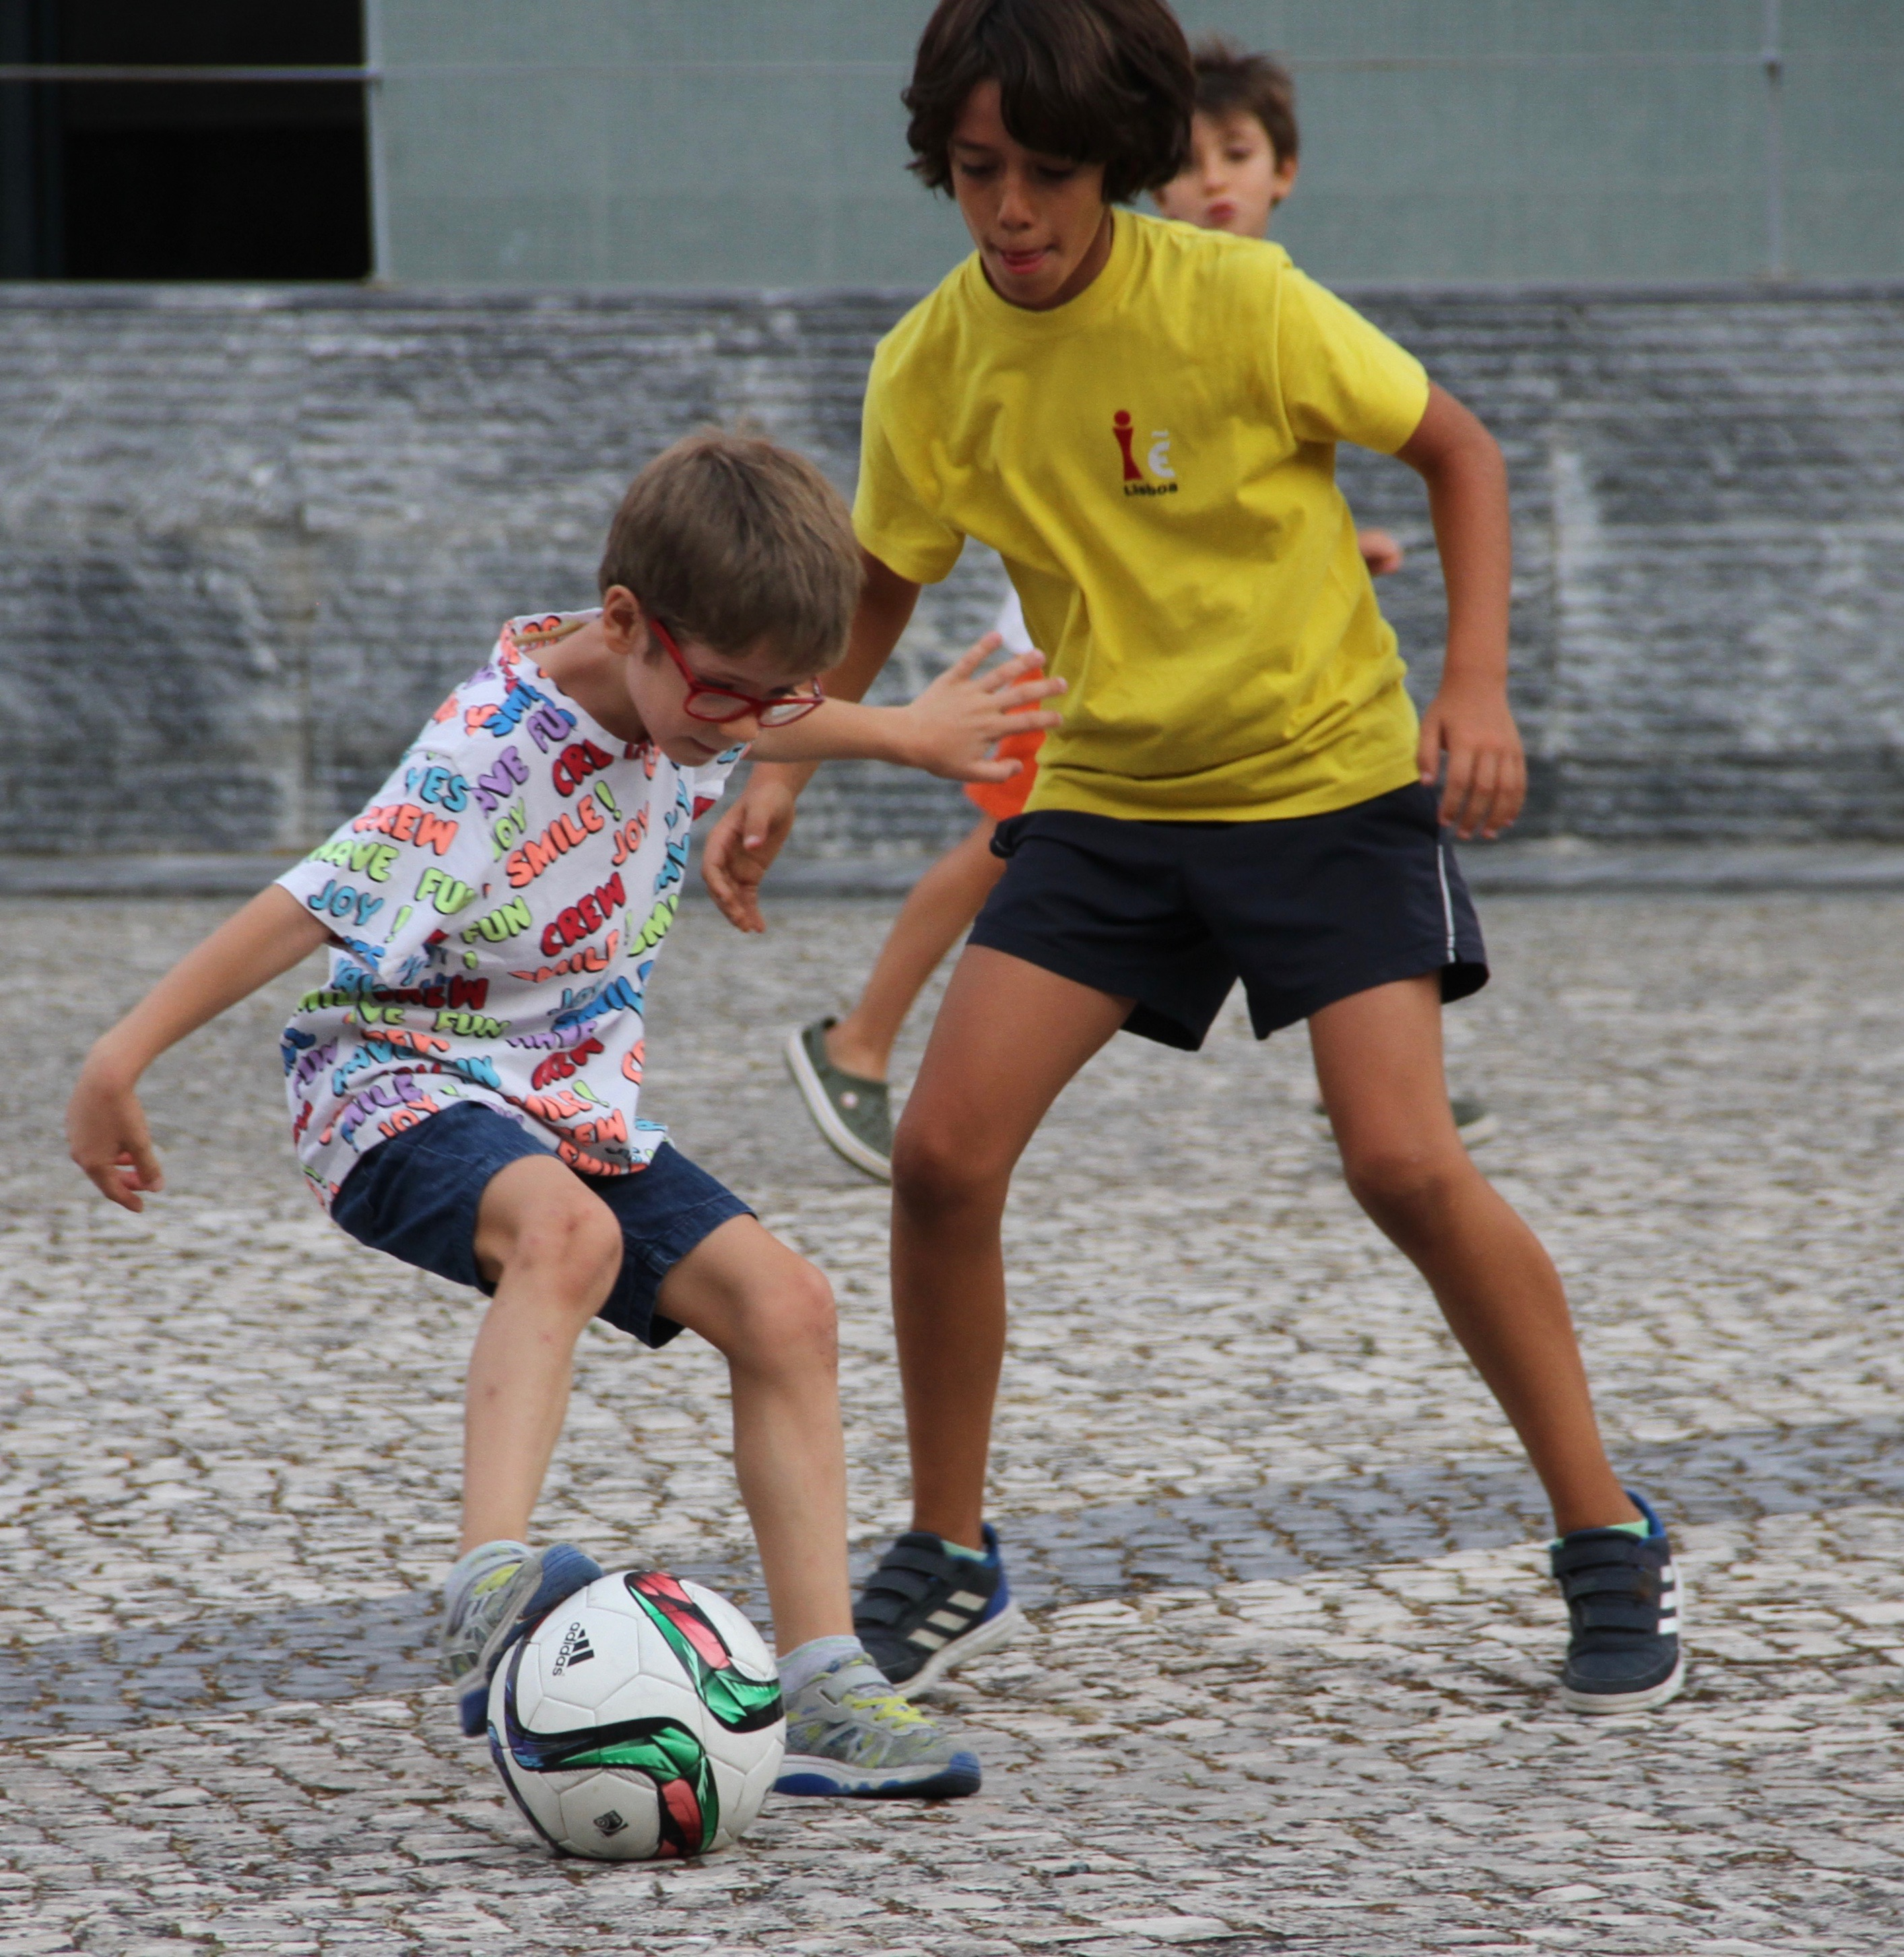 Young boys play soccer in a plaza in Lisbon, Portugal, on Saturday, Sept. 14, 2019.